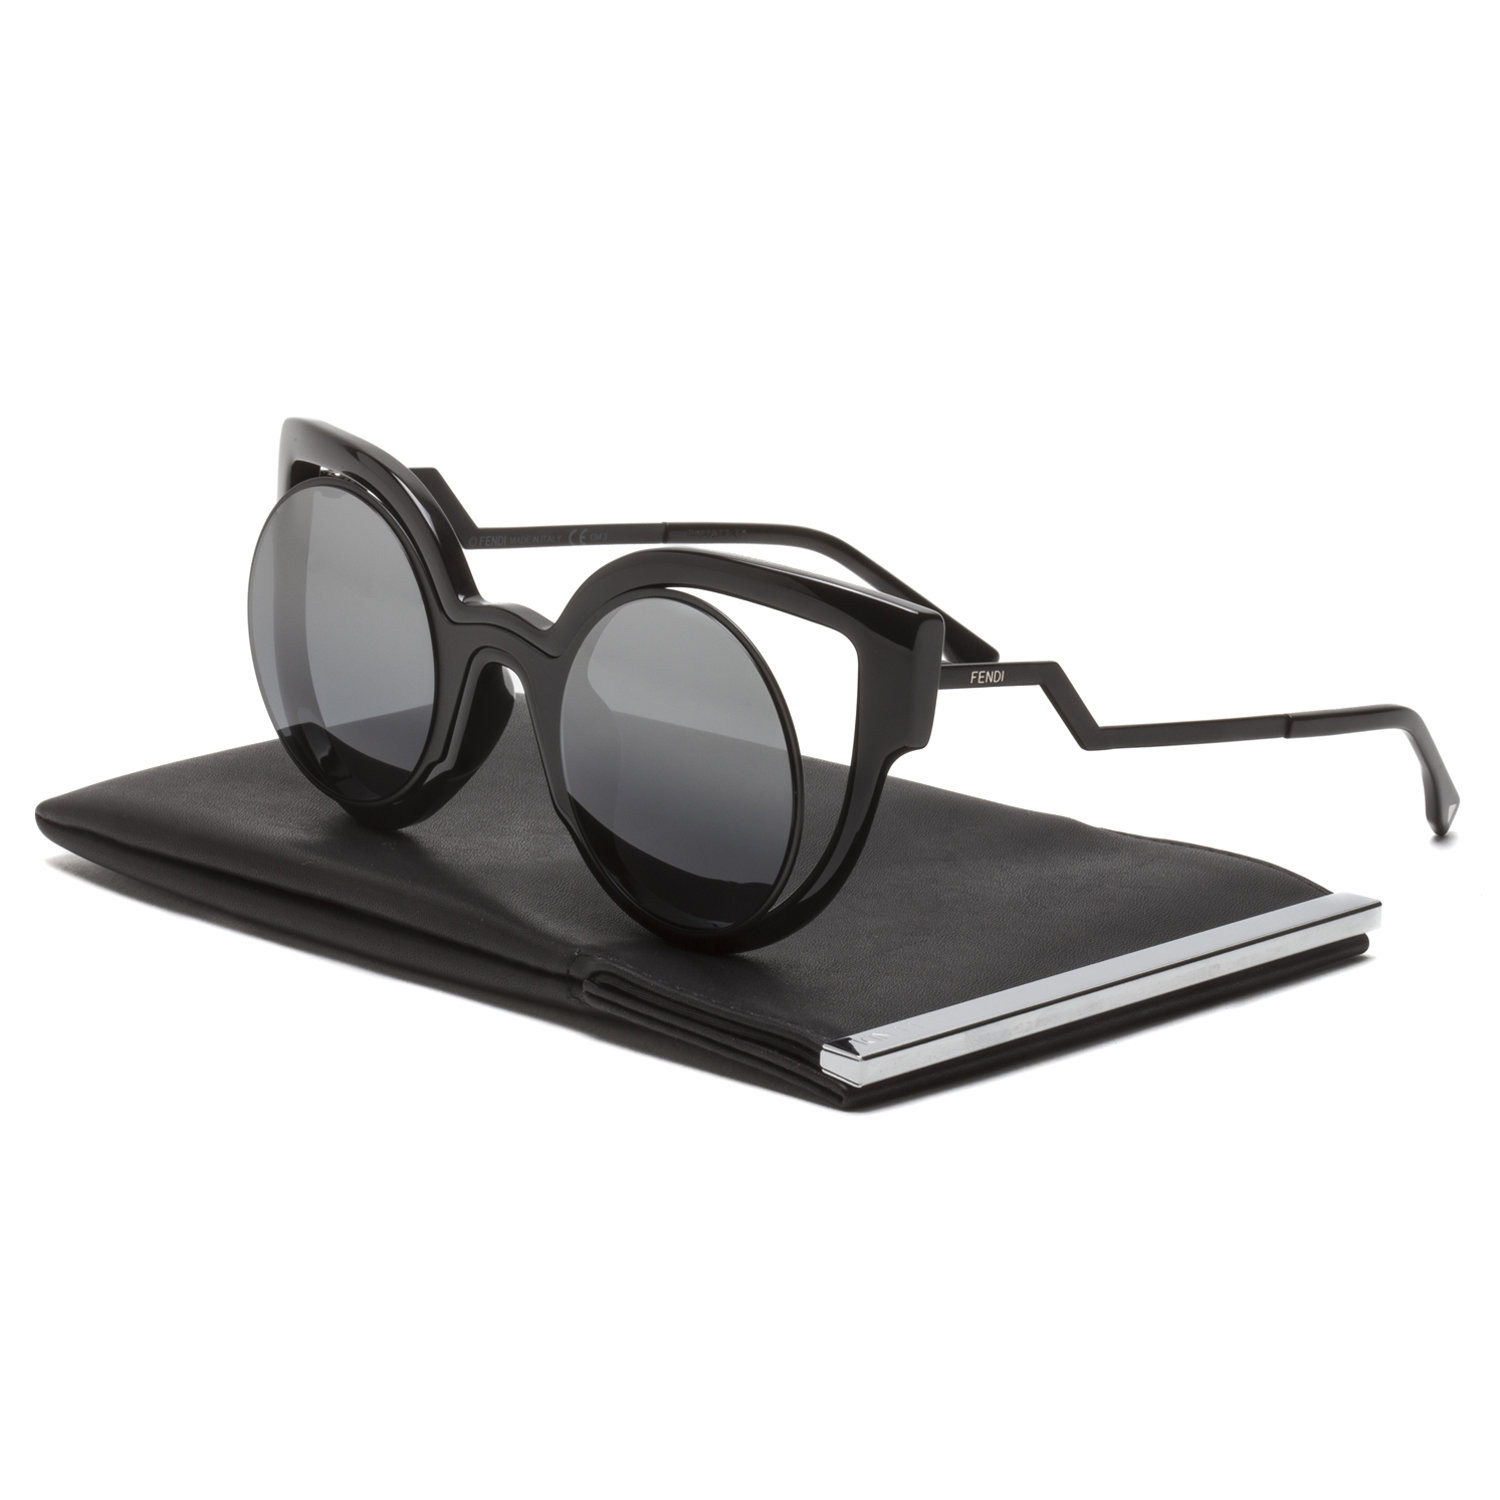 5aa0a1e240a0 Details about Fendi FF 0137 S Paradeyes Womens Sunglasses NT2CN Black Frame  Grey Mirrored Lens